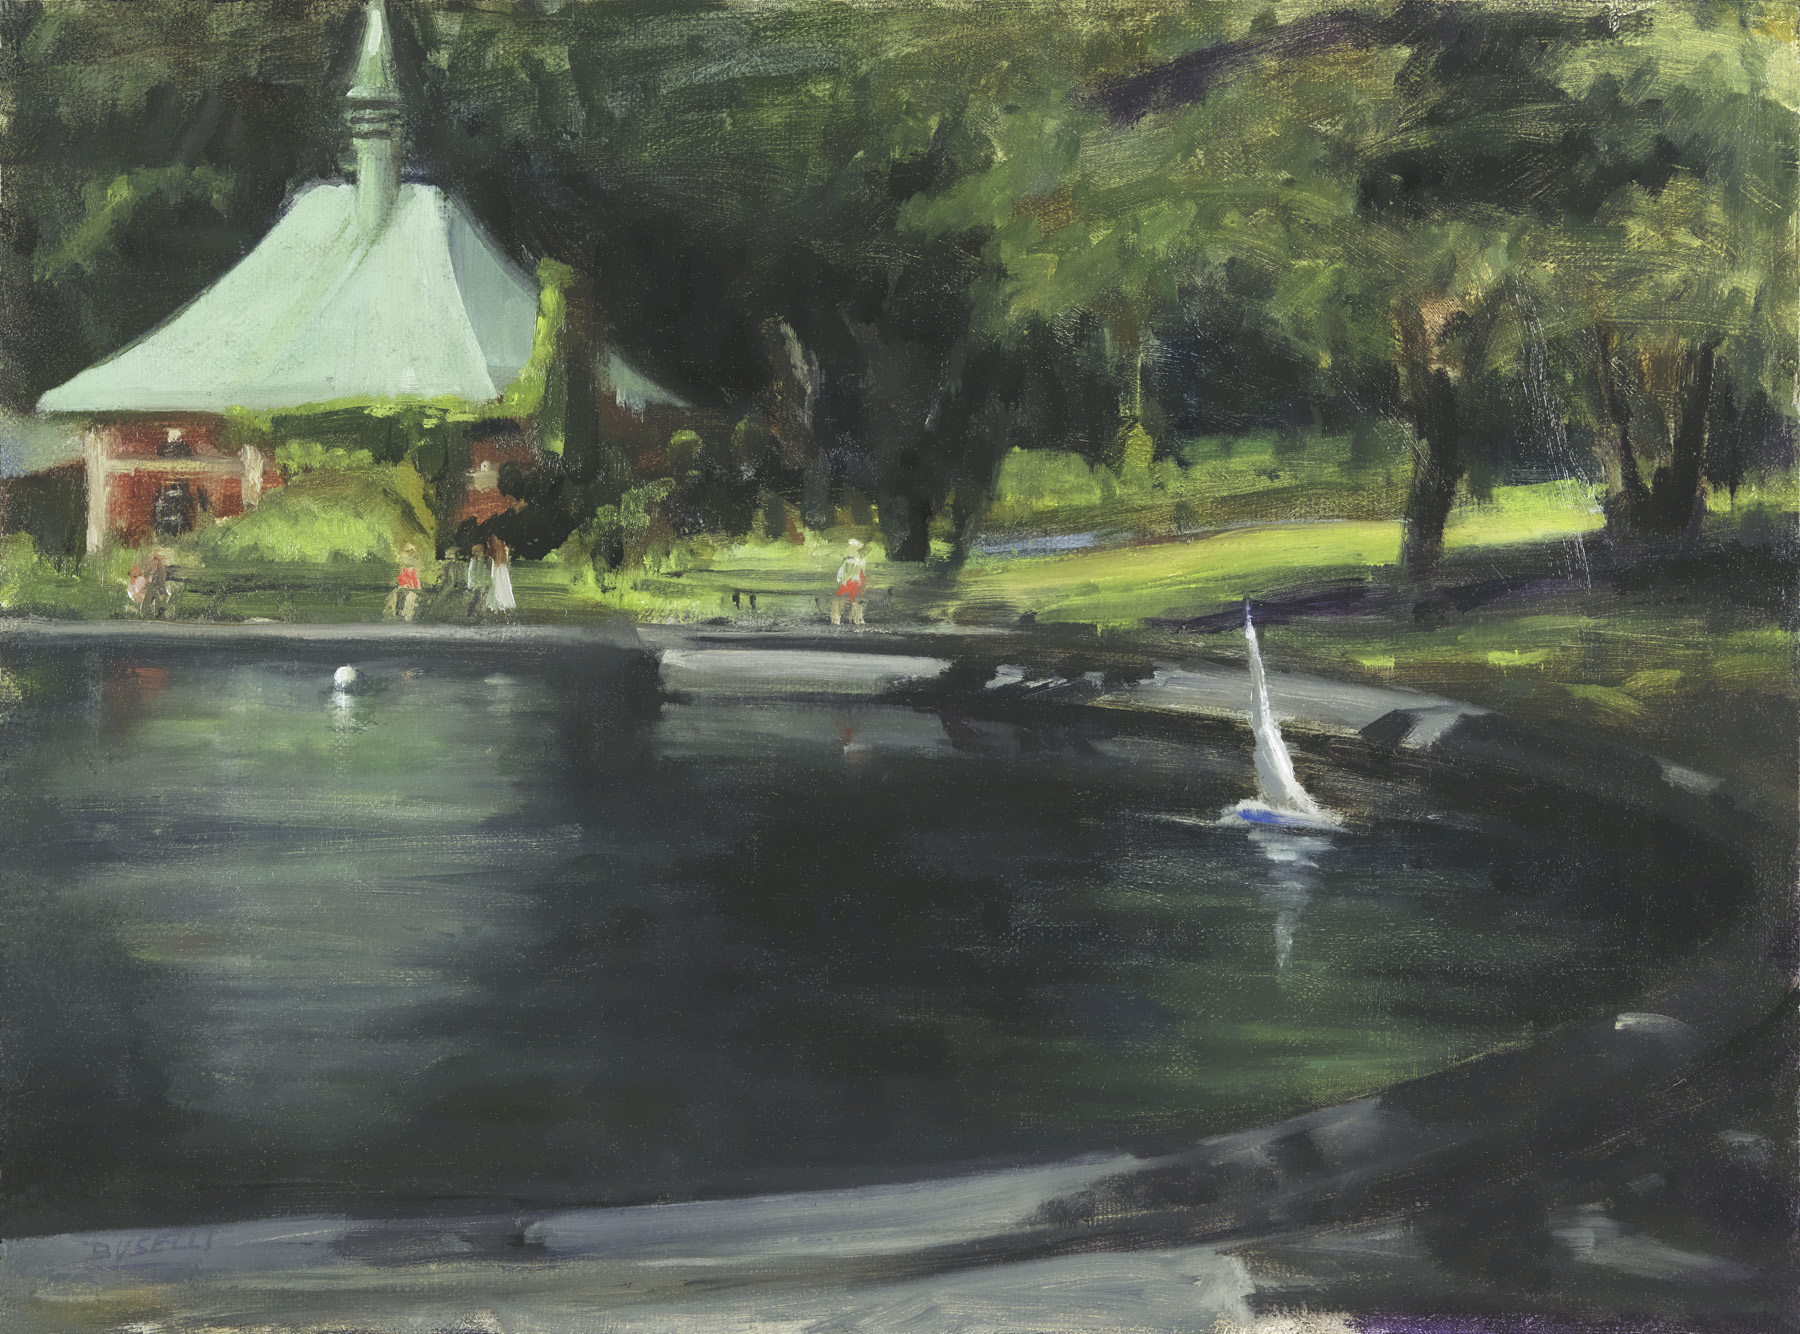 """""""INTO THE SHADOWS  at the BOAT POND, CENTRAL PARK, NYC""""  oil on linen   12"""" x 16"""""""